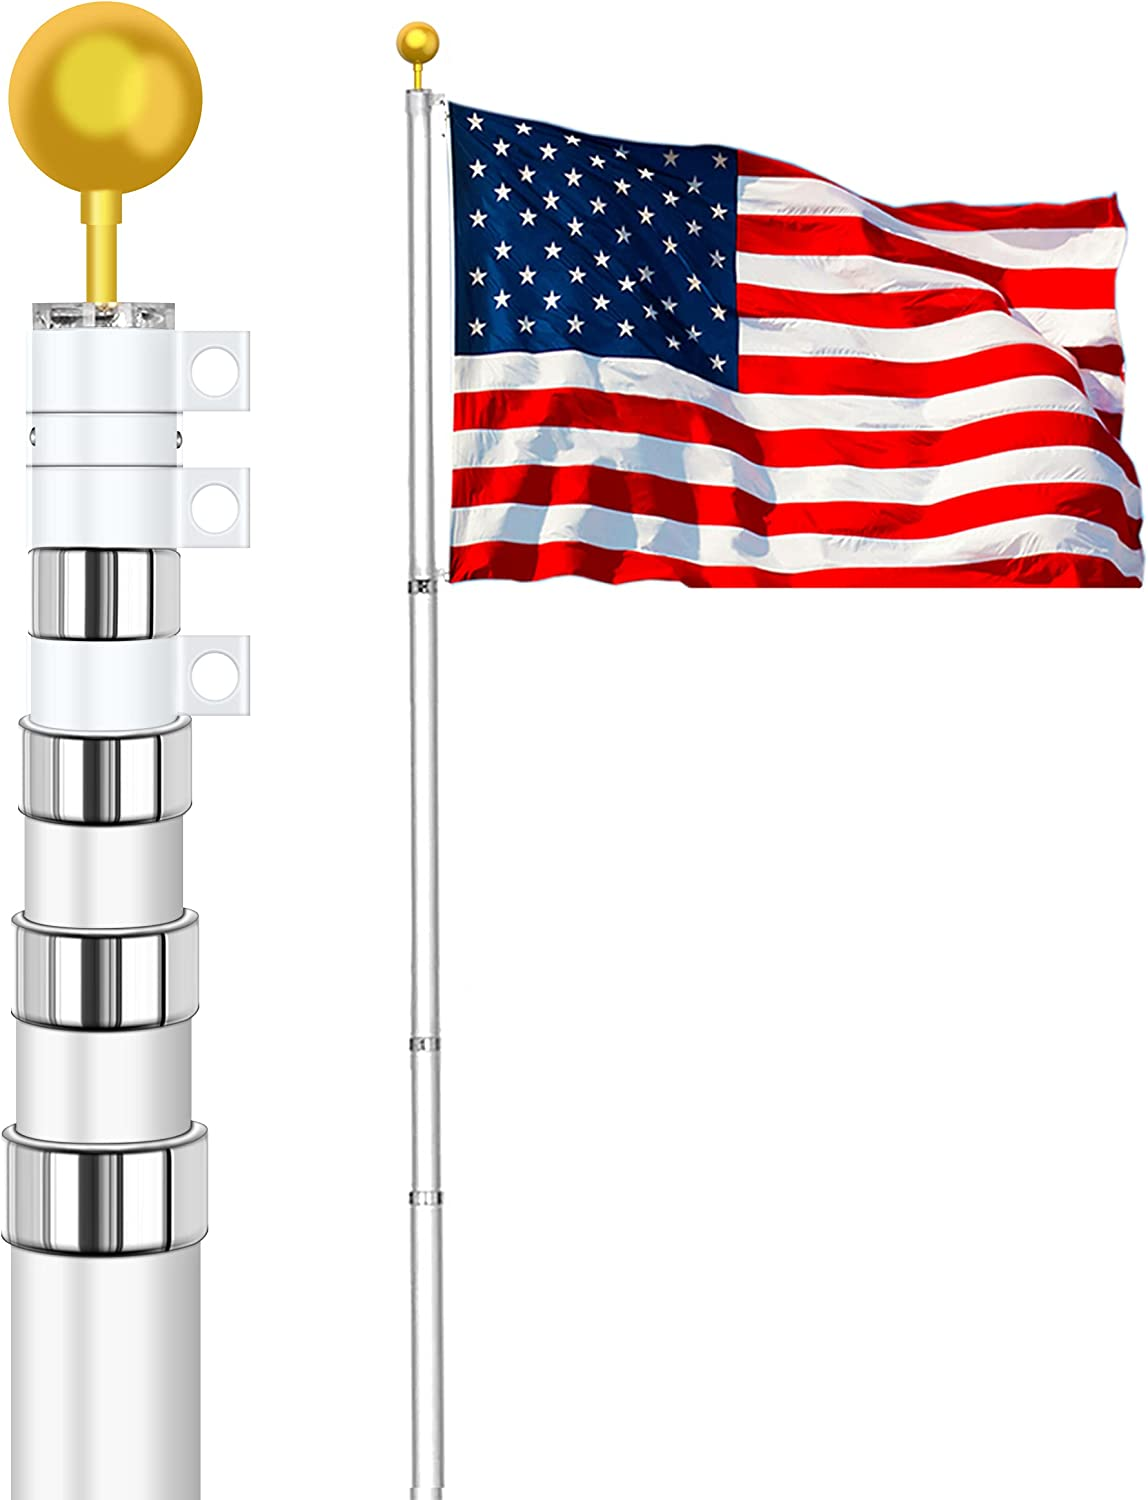 Max 76% OFF kese 25FT Telescopic Flag Large discharge sale Pole Flagp Duty Kit Residential Heavy